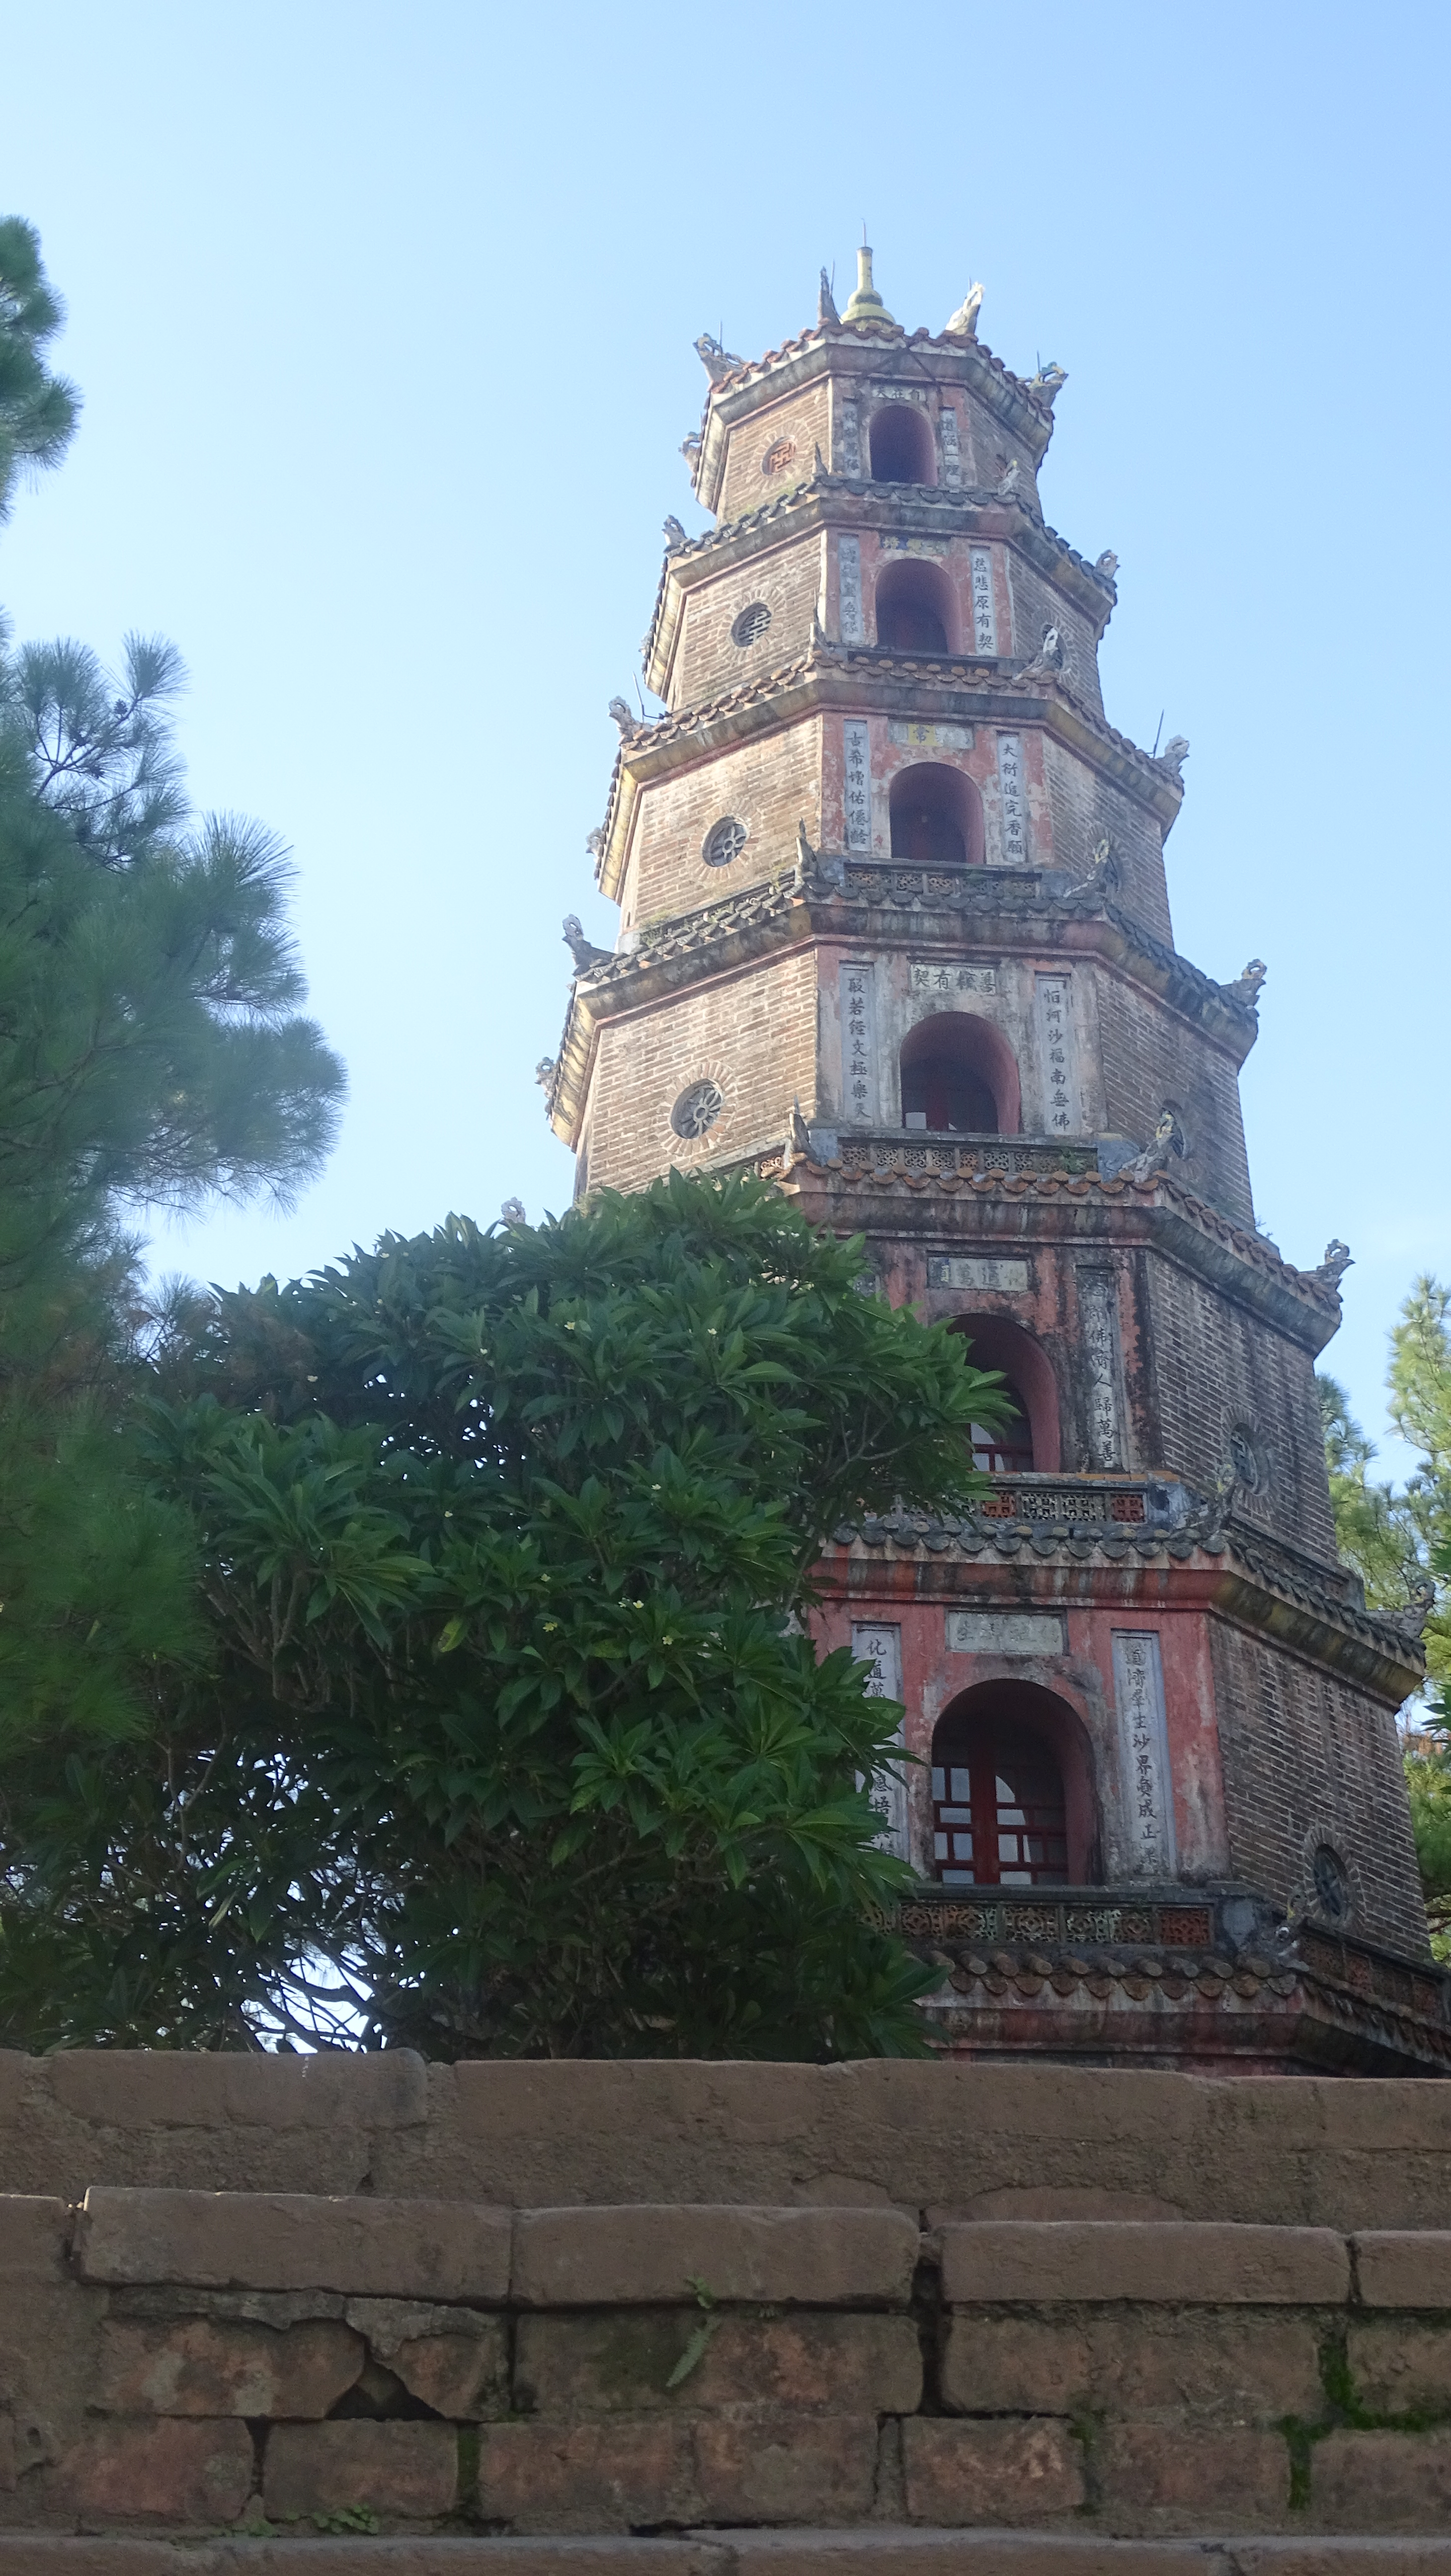 Seven-tiered, red-brick tower of Thien Mieu pagoda at the backdrop of blue sky